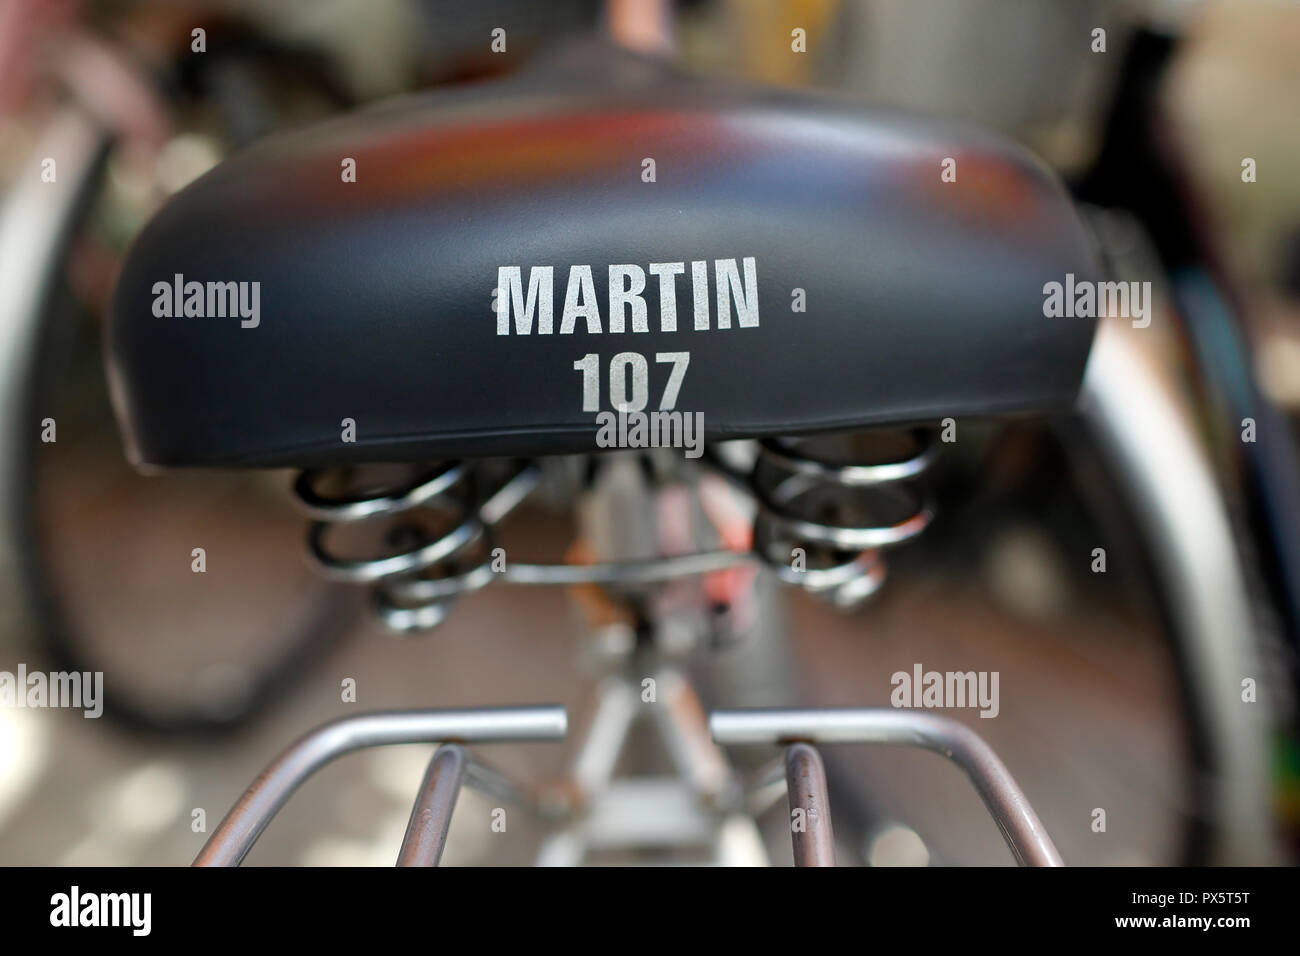 Detail of a bicycle saddle. Martin 107.  Ho Chi Minh City. Vietnam. - Stock Image